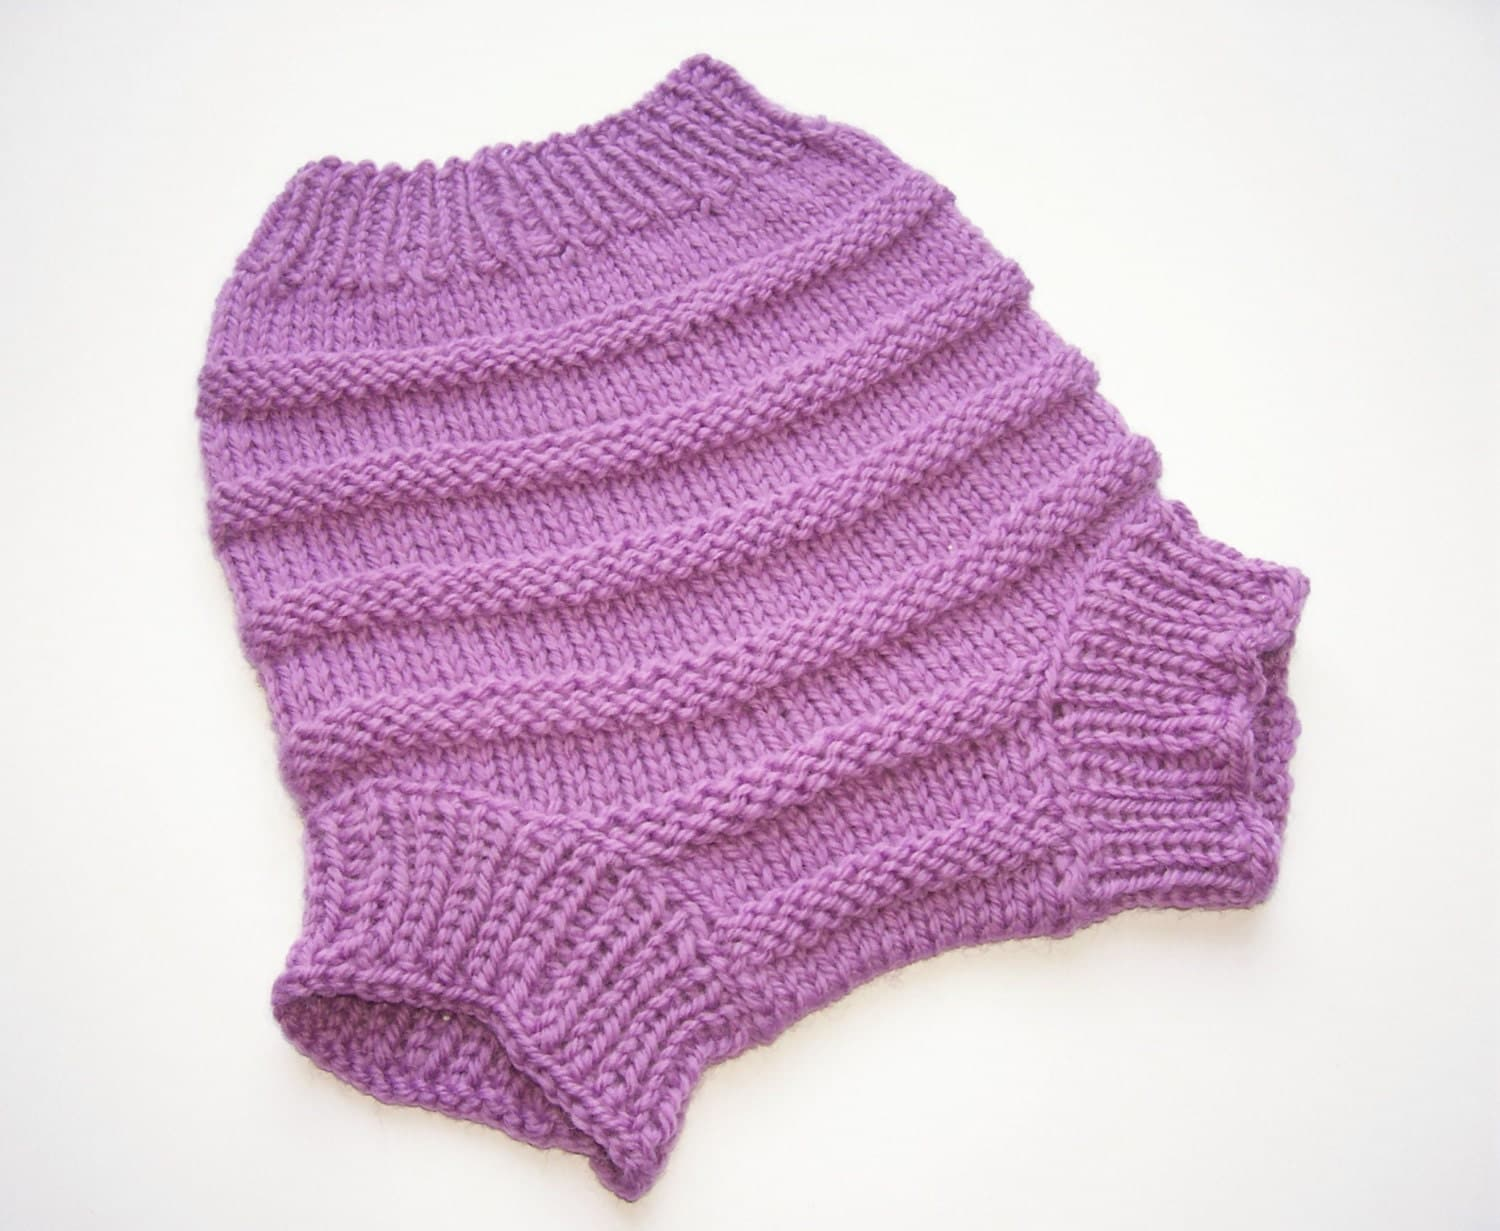 Knitting Pattern For Wool Diaper Covers : Hand Knitted Wool Diaper Cover Knit Cloth Diaper Wool Diaper